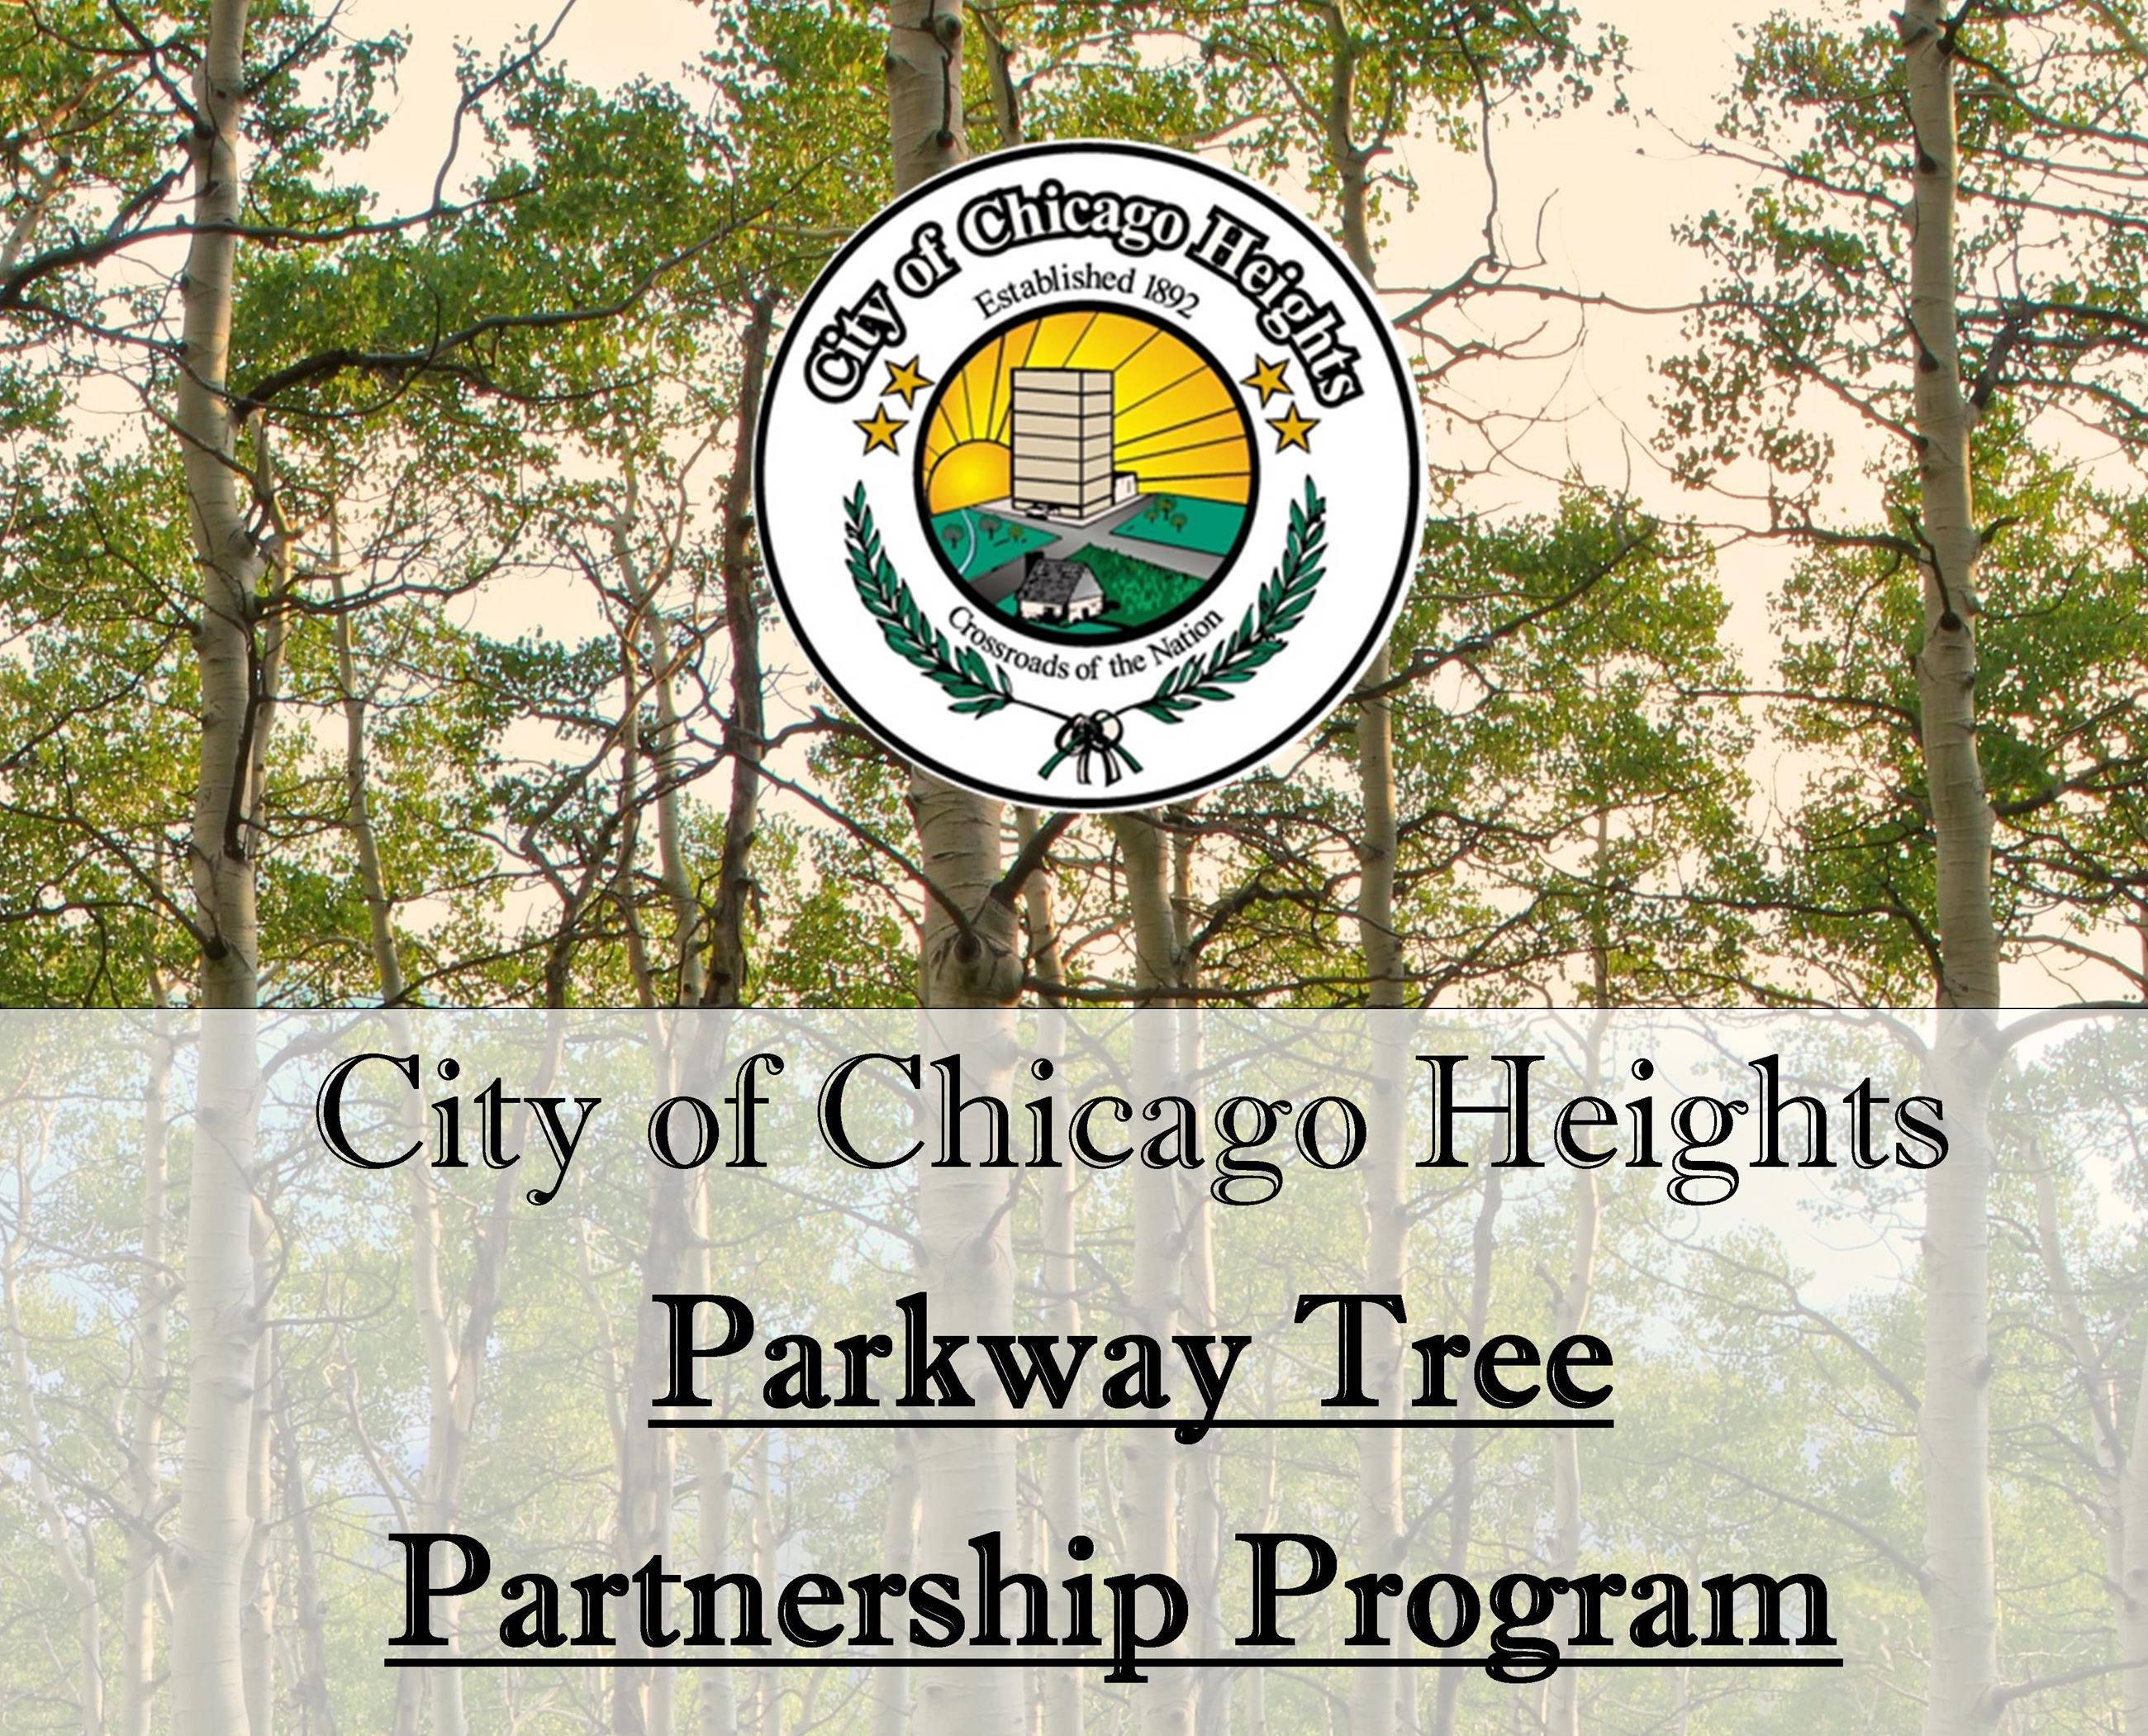 City of Chicago Heights Parkway Tree Partnership Program ReOpens